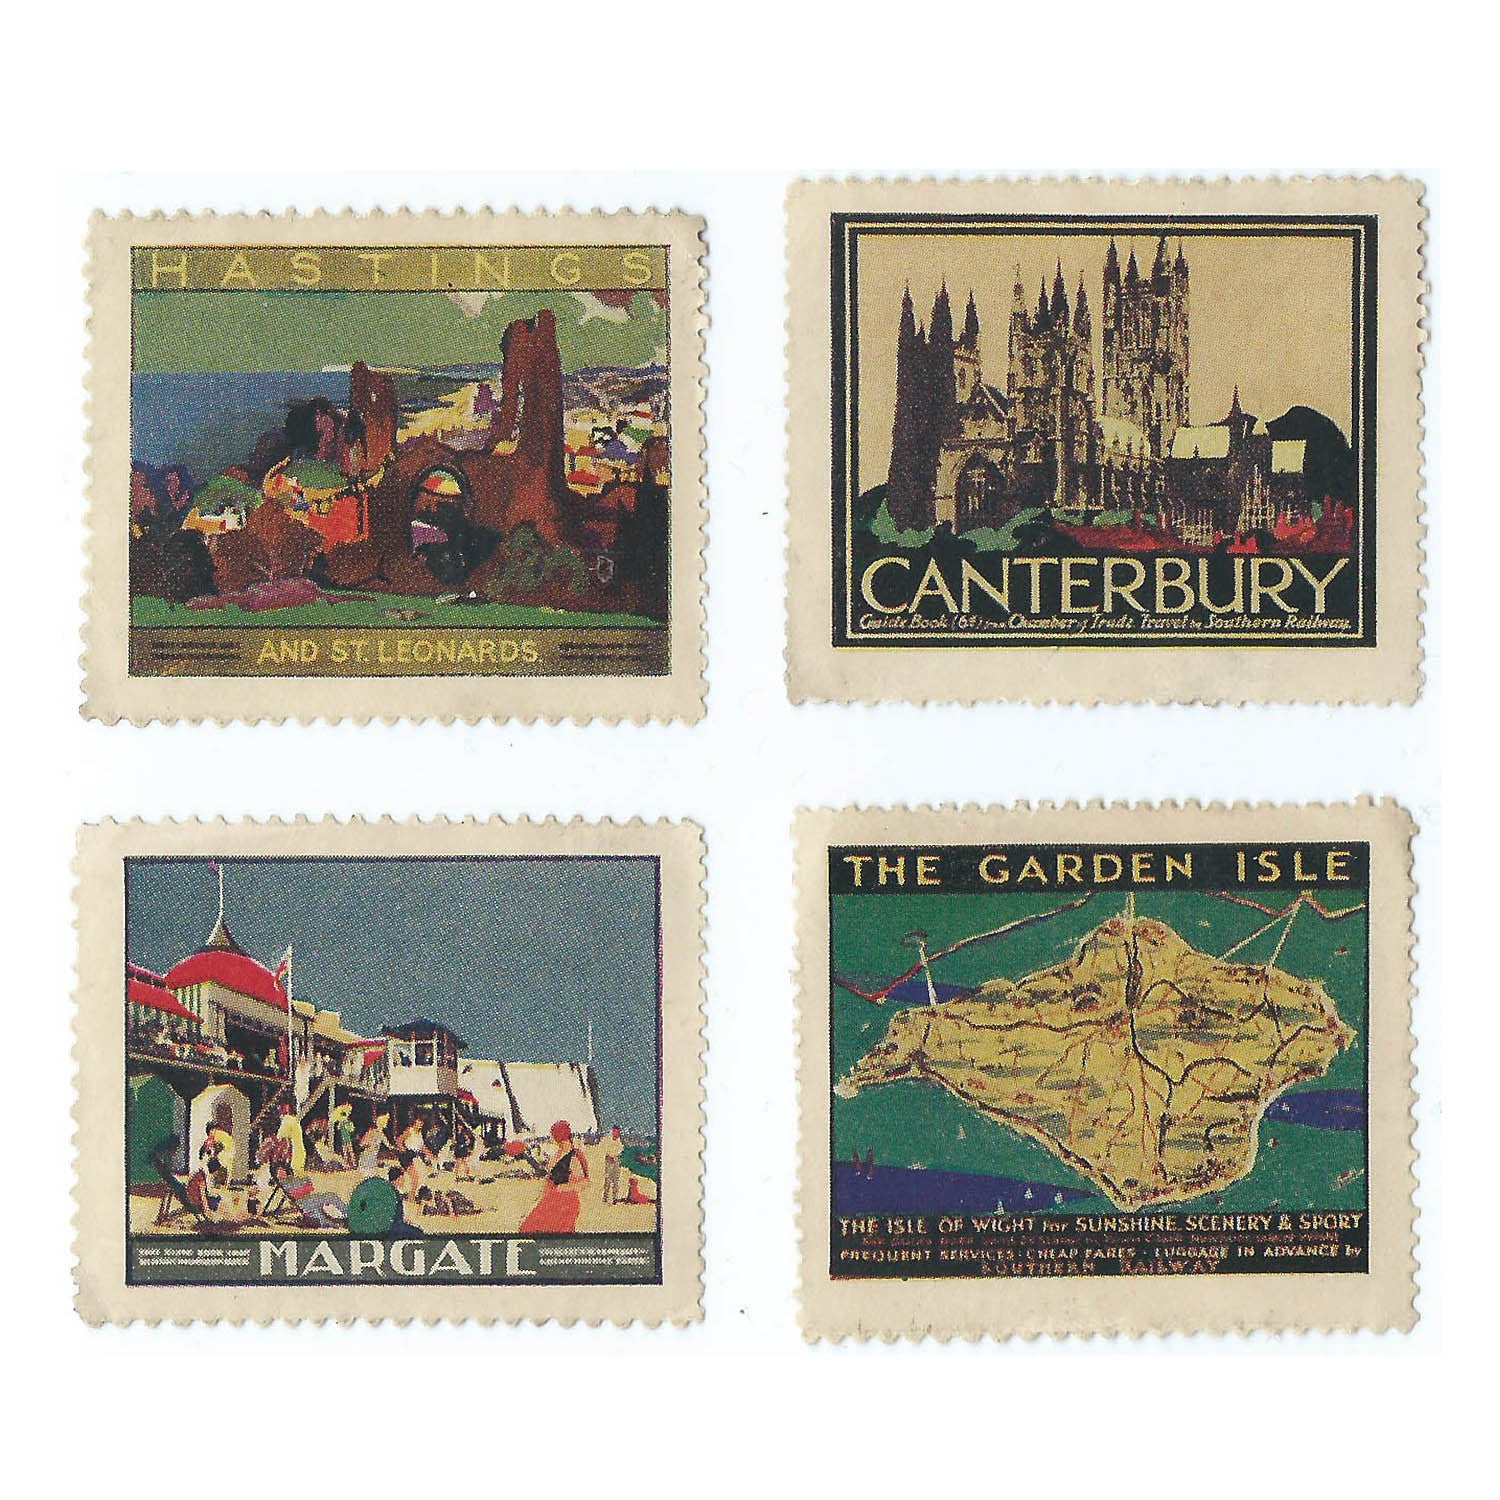 4 1930s poster stamps: Margate, Hastings, Canterbury and Isle of Wight